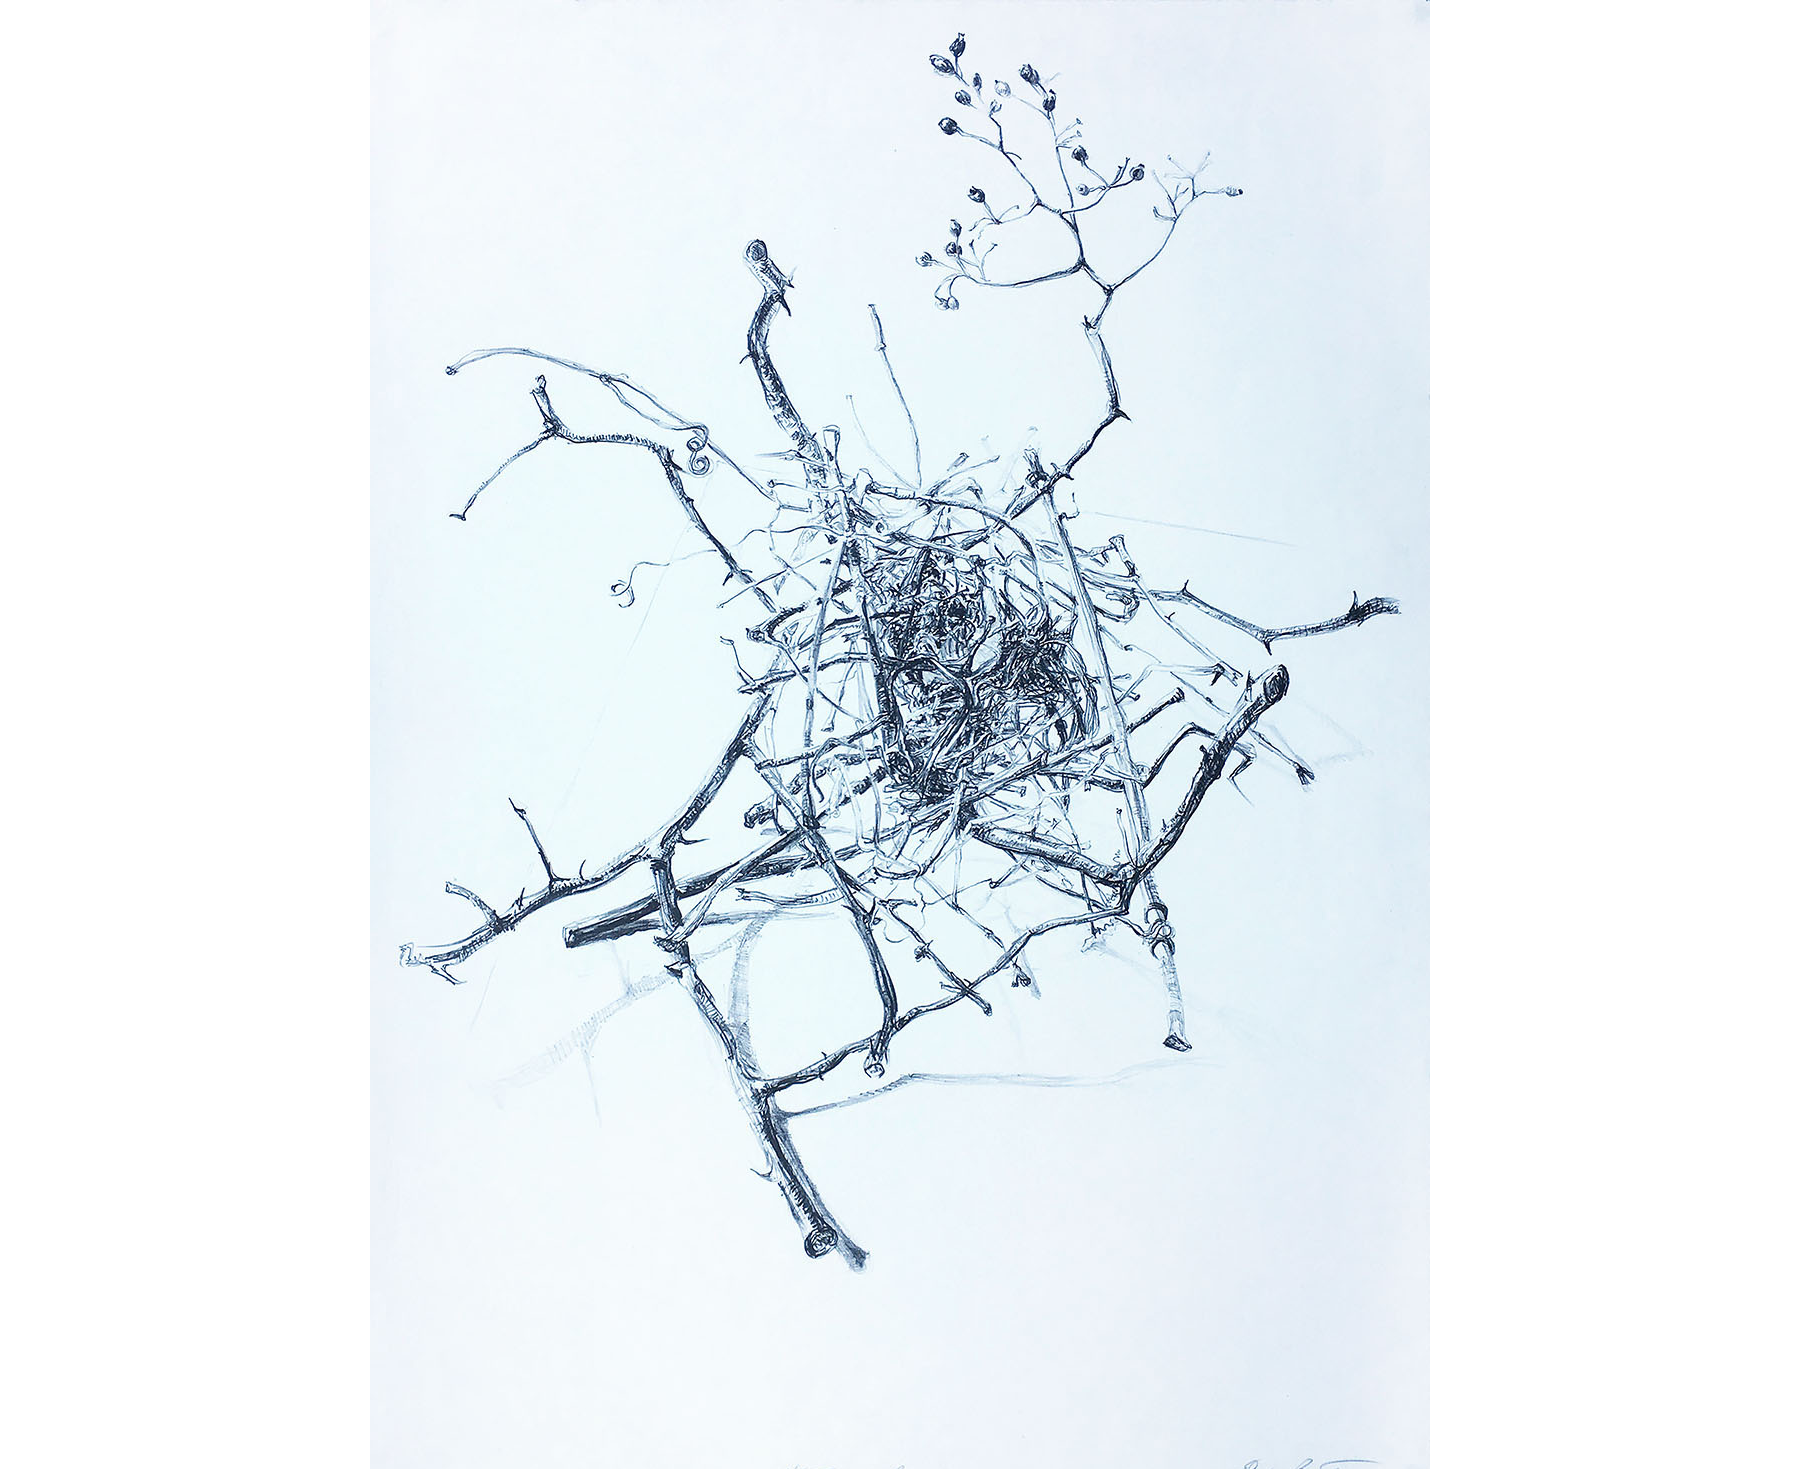 Nest in Branches, 1998, Lithograph. 36 x 26